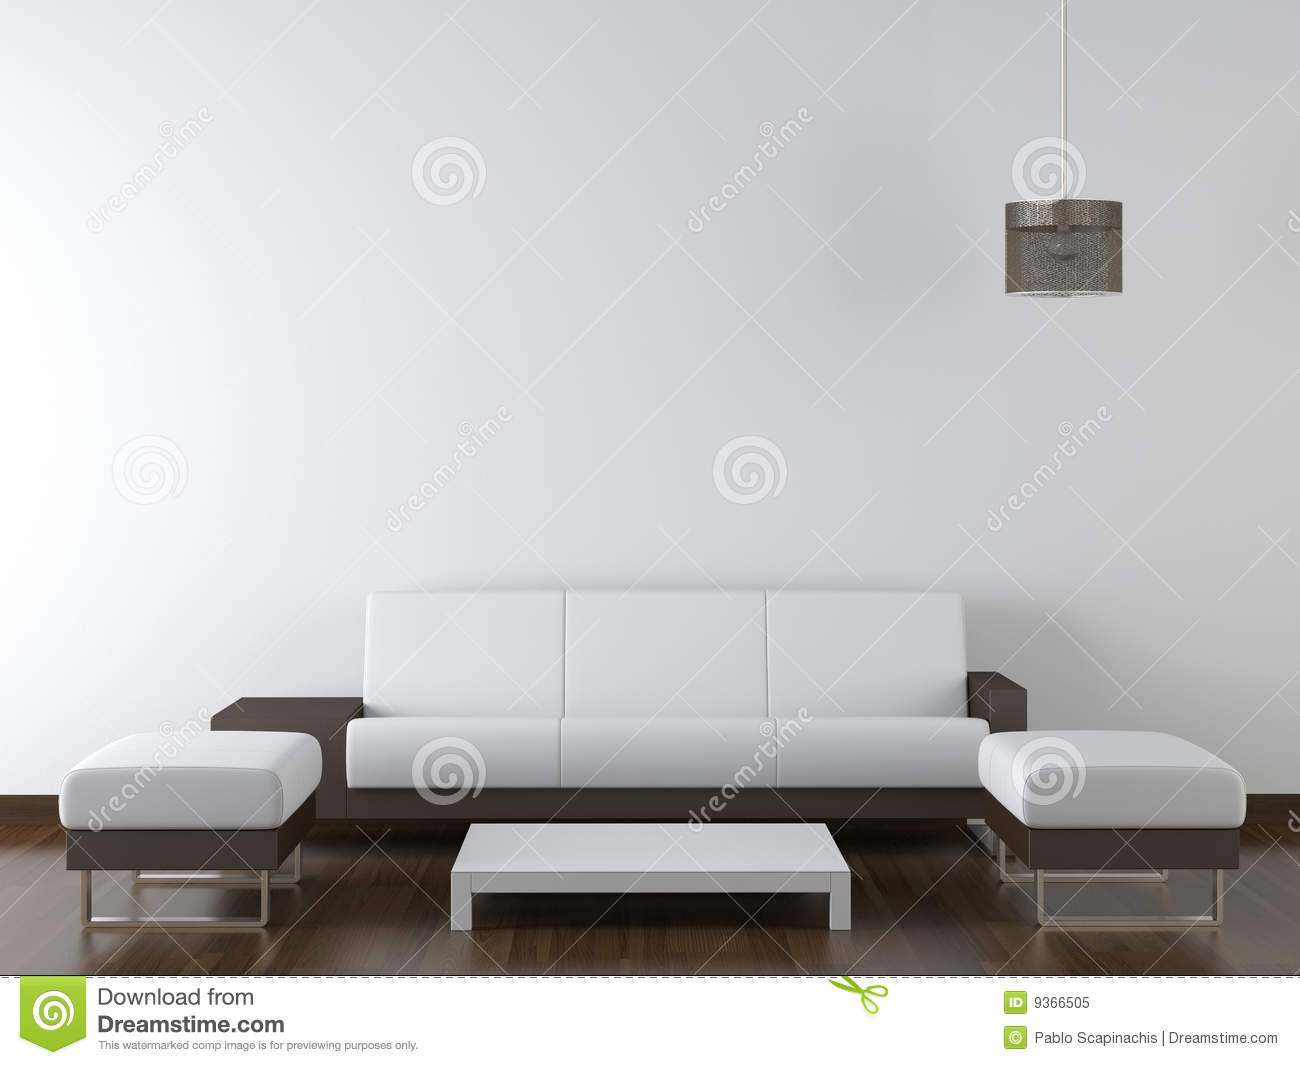 Royalty Free Stock Photo Copy Design Furniture Interior